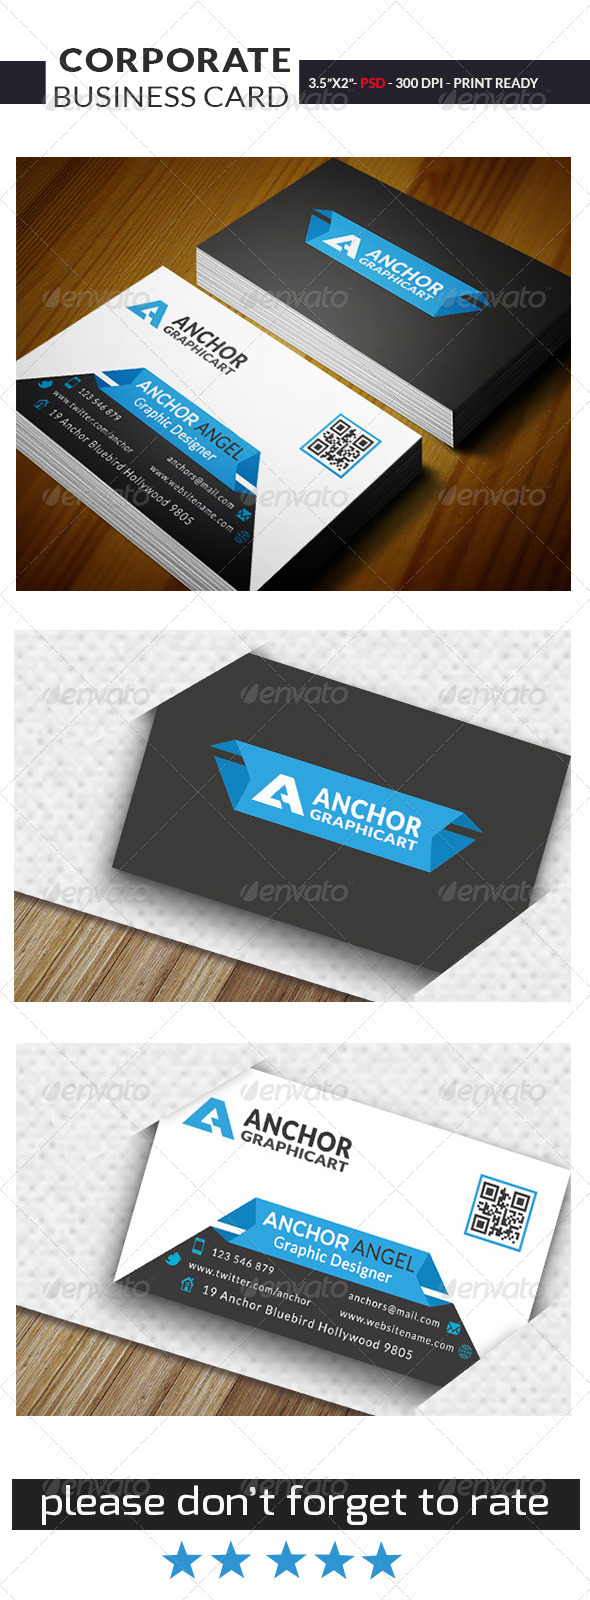 GraphicRiver Corporate Business Card 0012 7499133